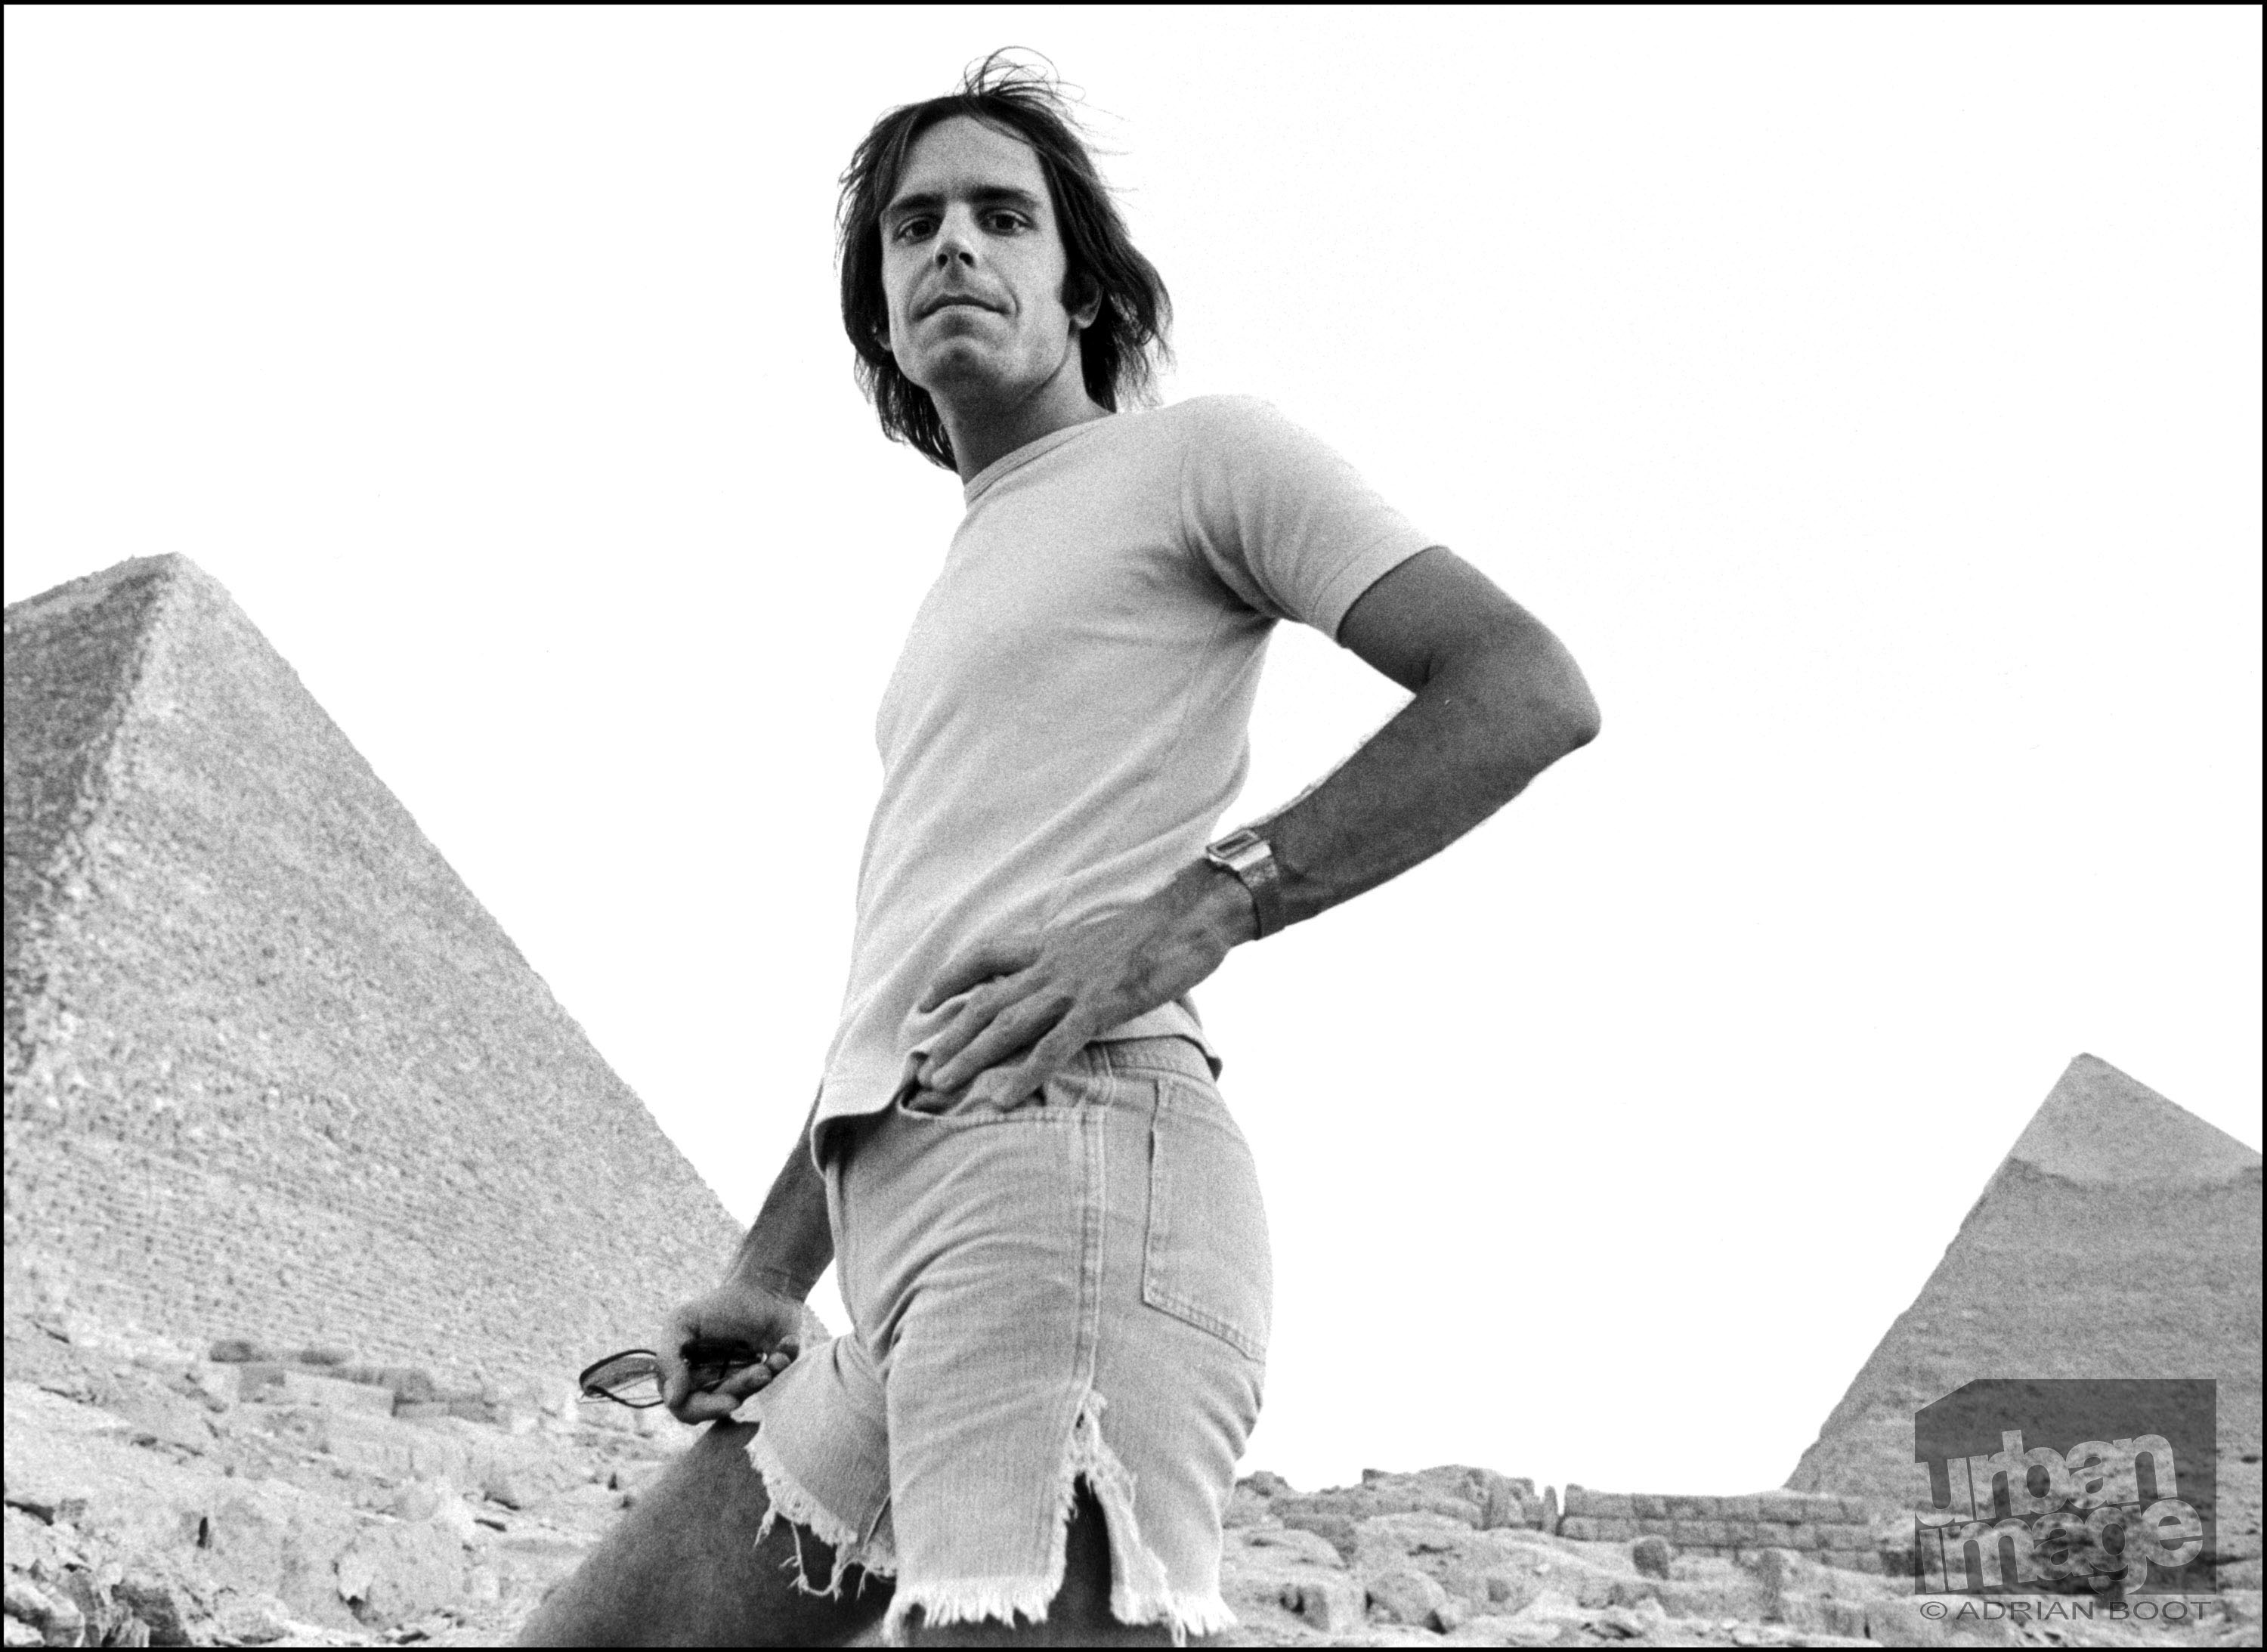 Bob Weir - The Grateful Dead – Egypt 1978